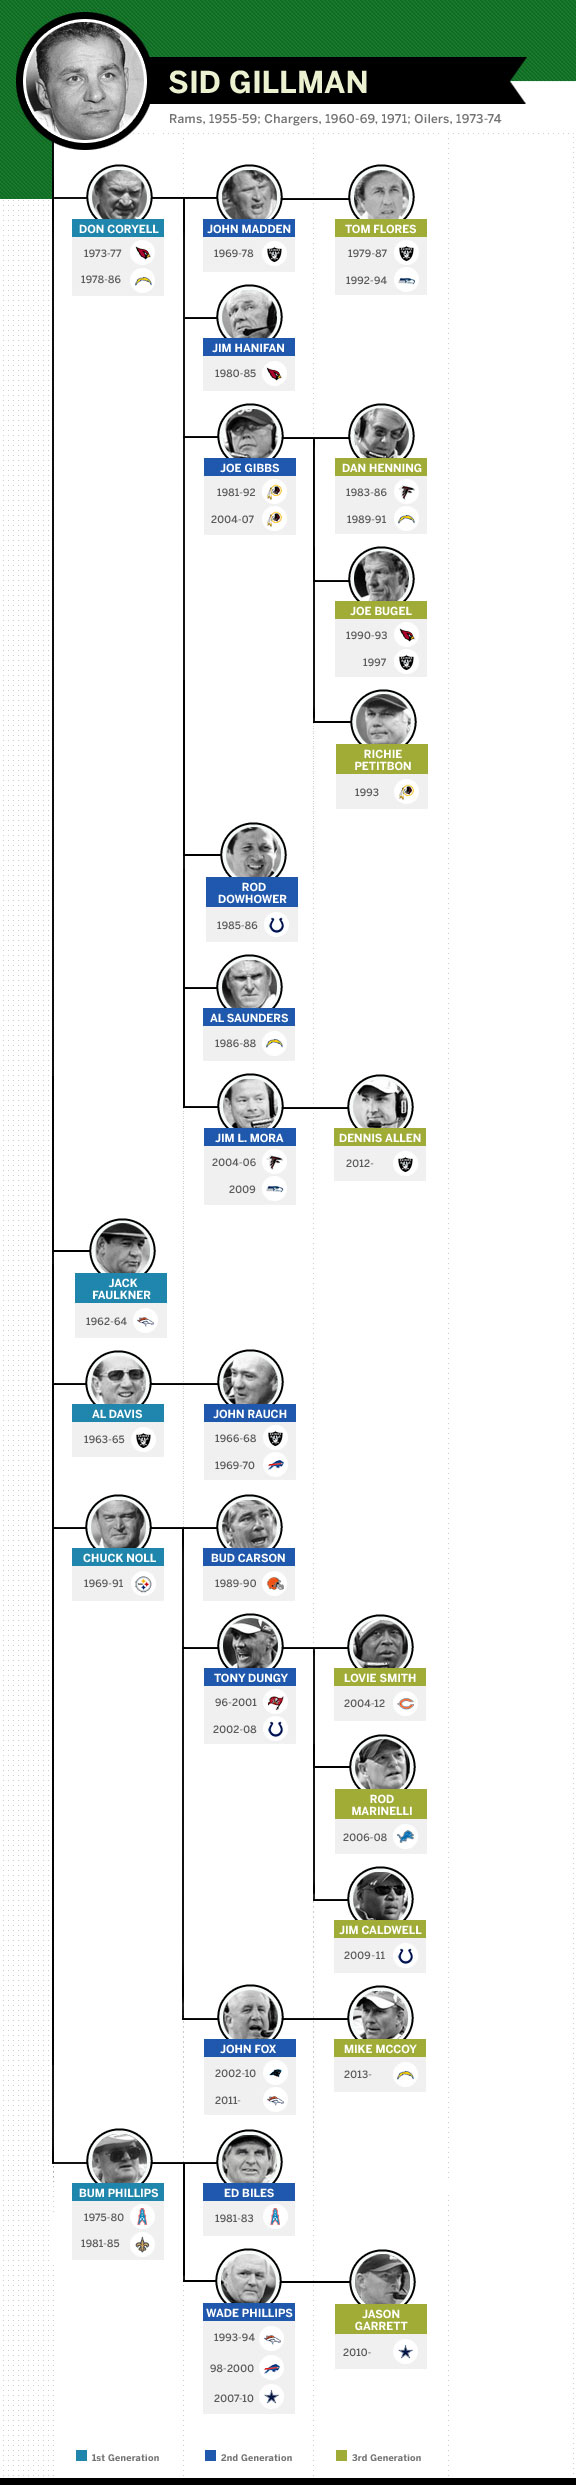 Greatest Nfl Coaches The Sid Gillman Coaching Tree